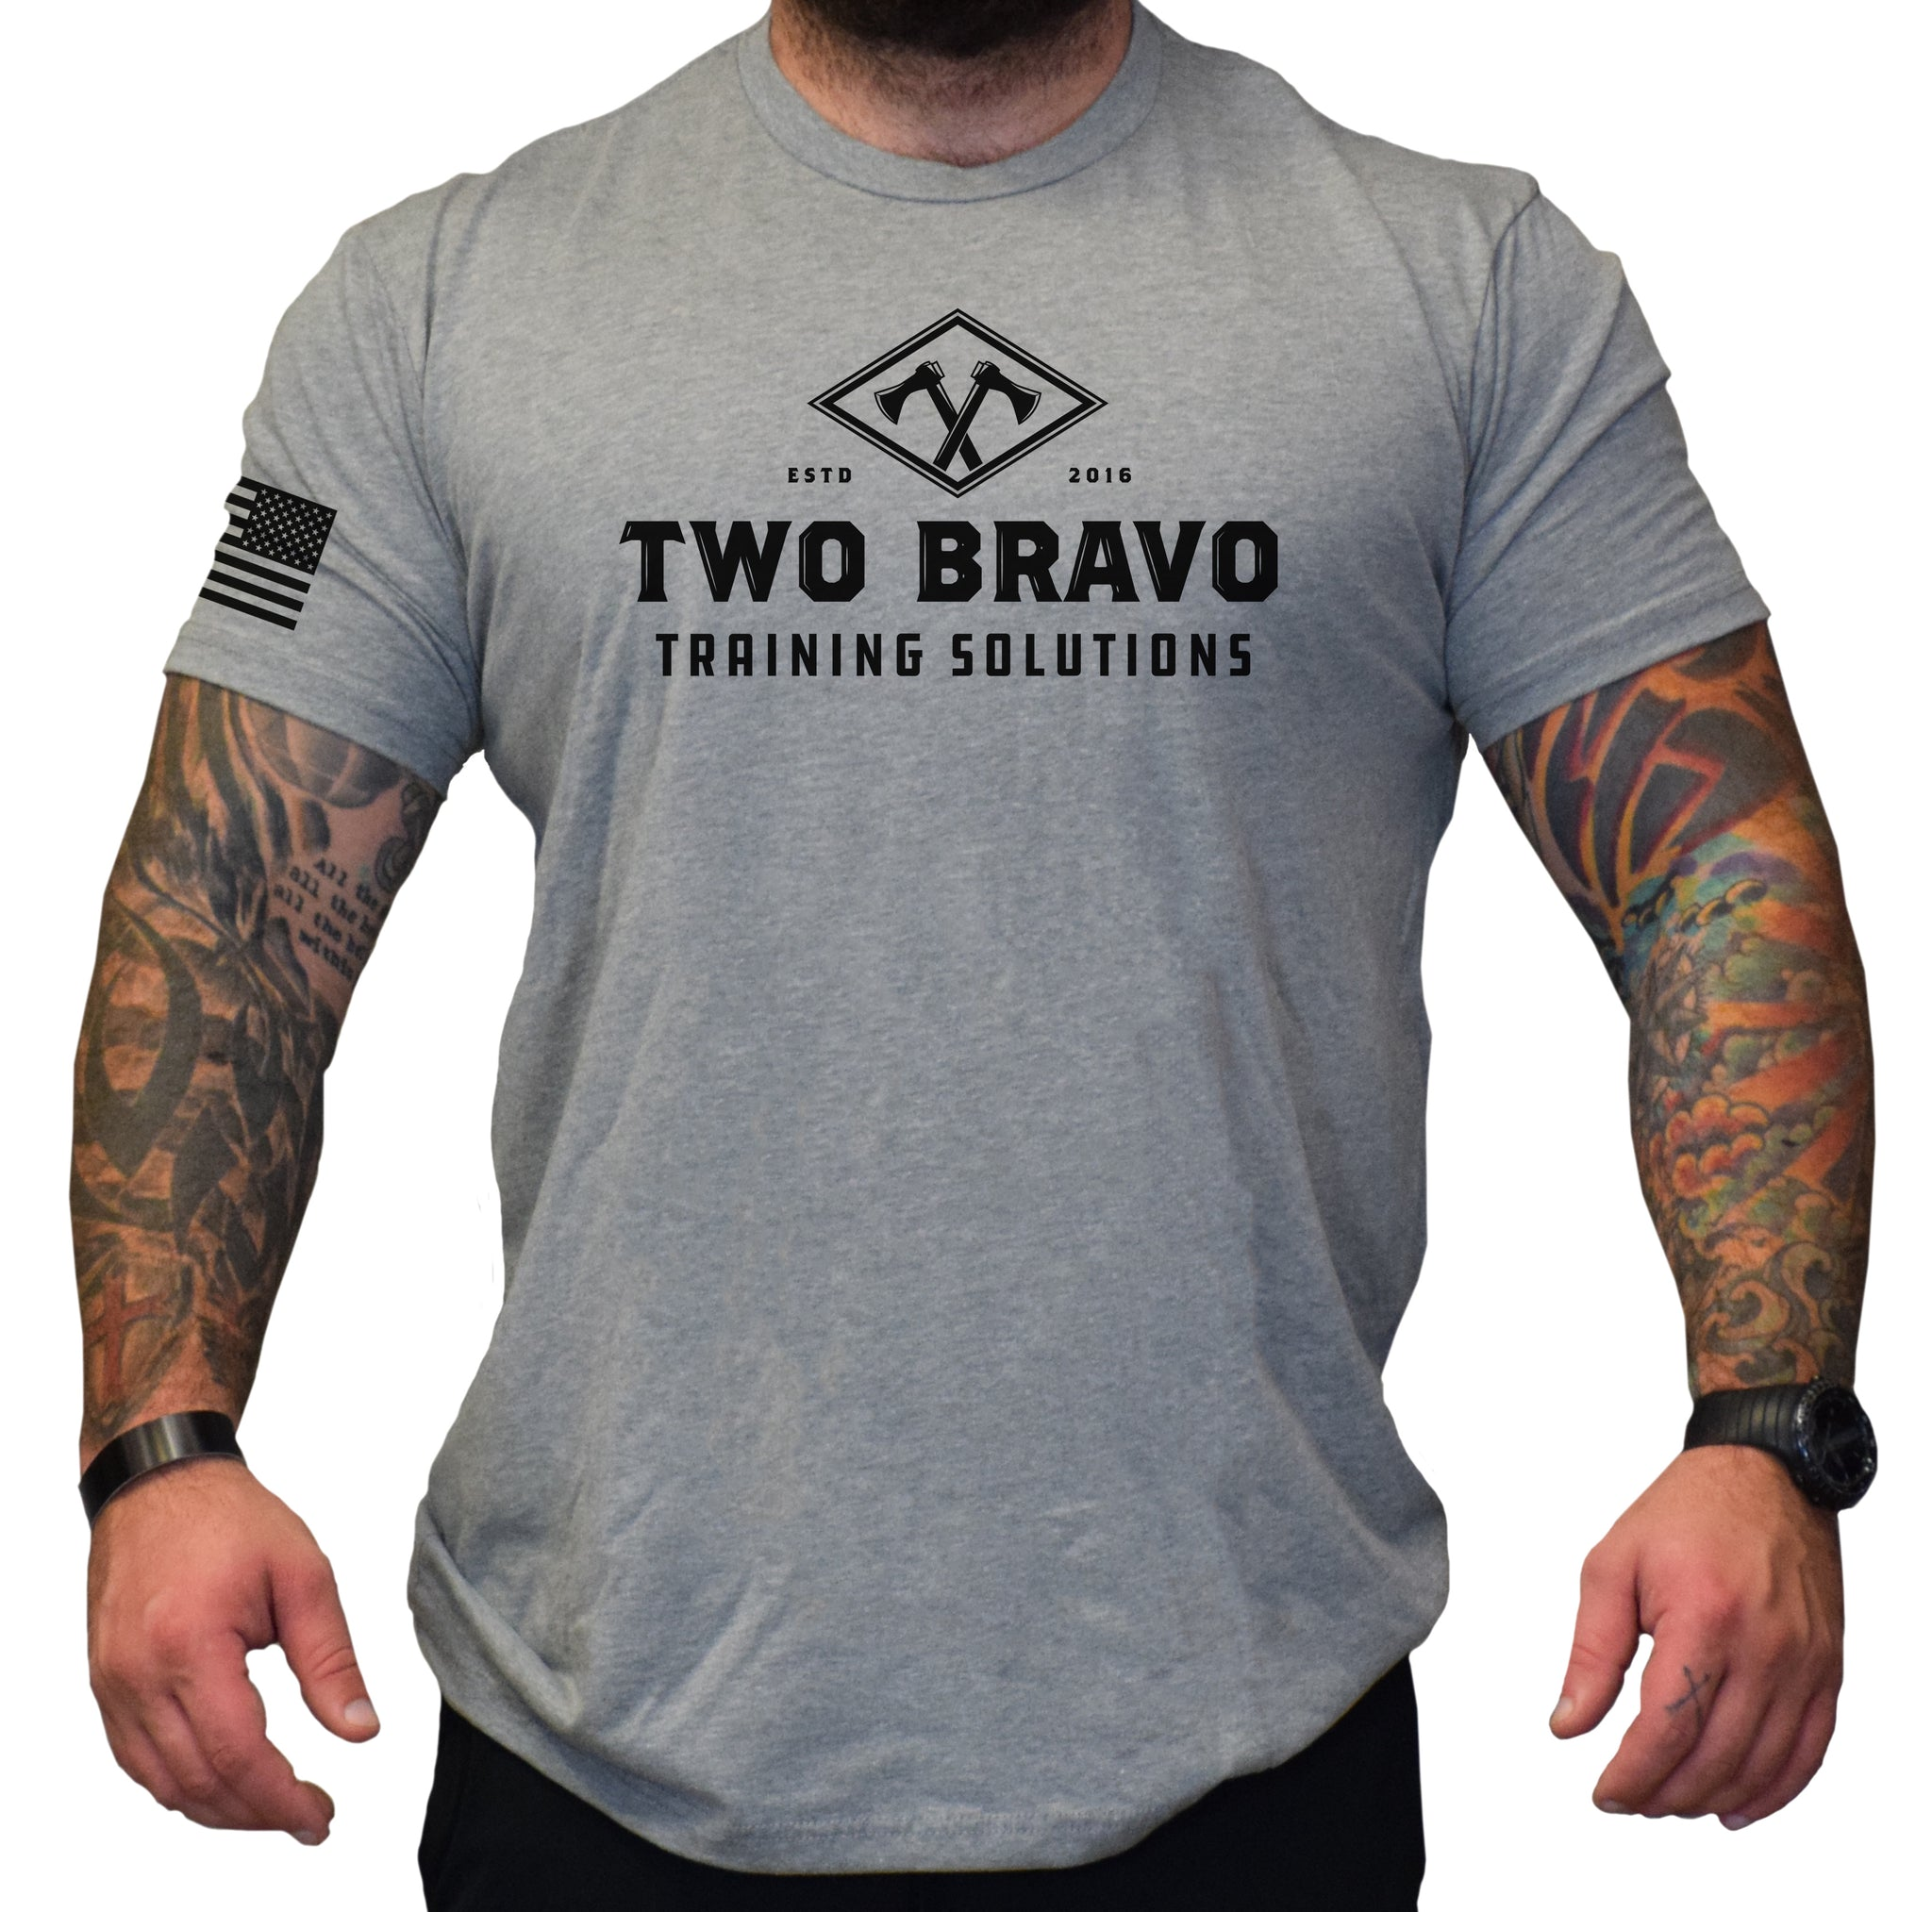 Two Bravo Training Solutions